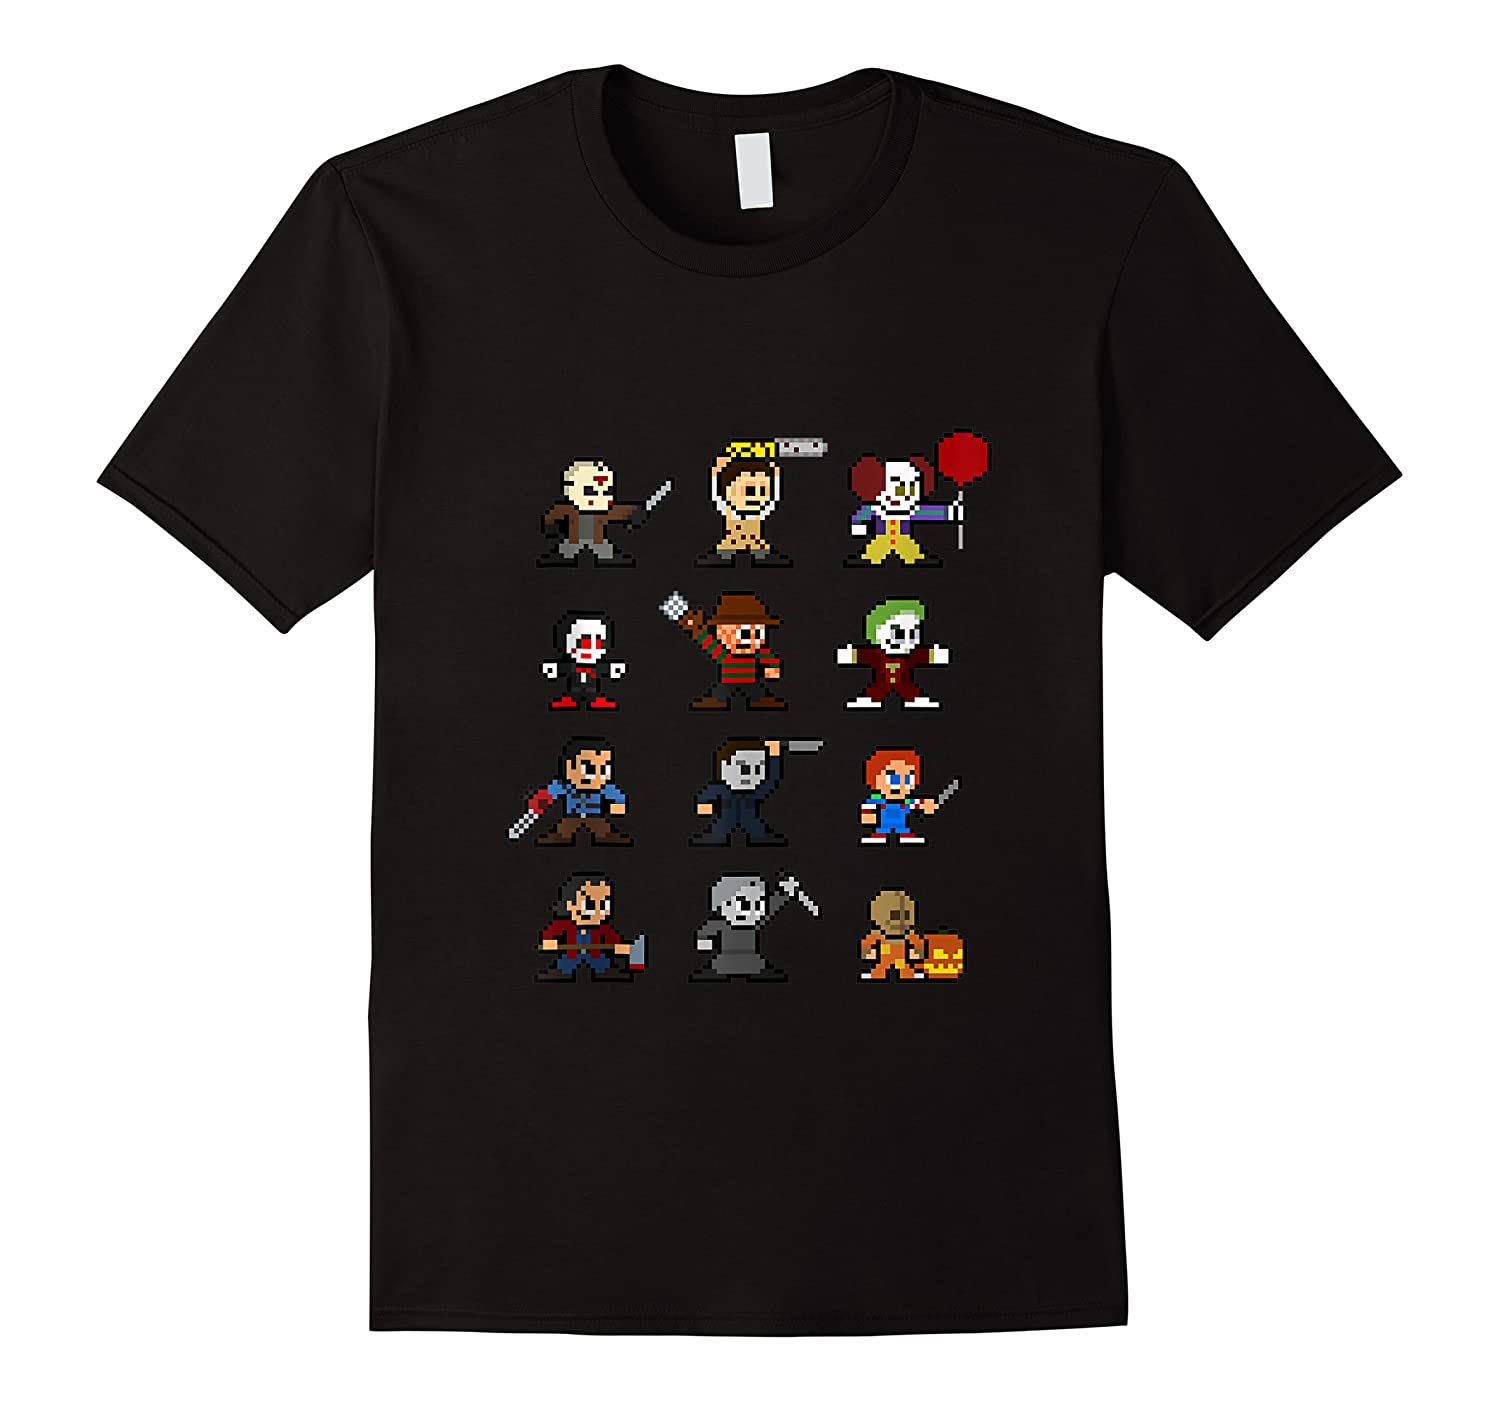 Friends Pixel Halloween Icons Scary Horror Movies Tank Top Shirts